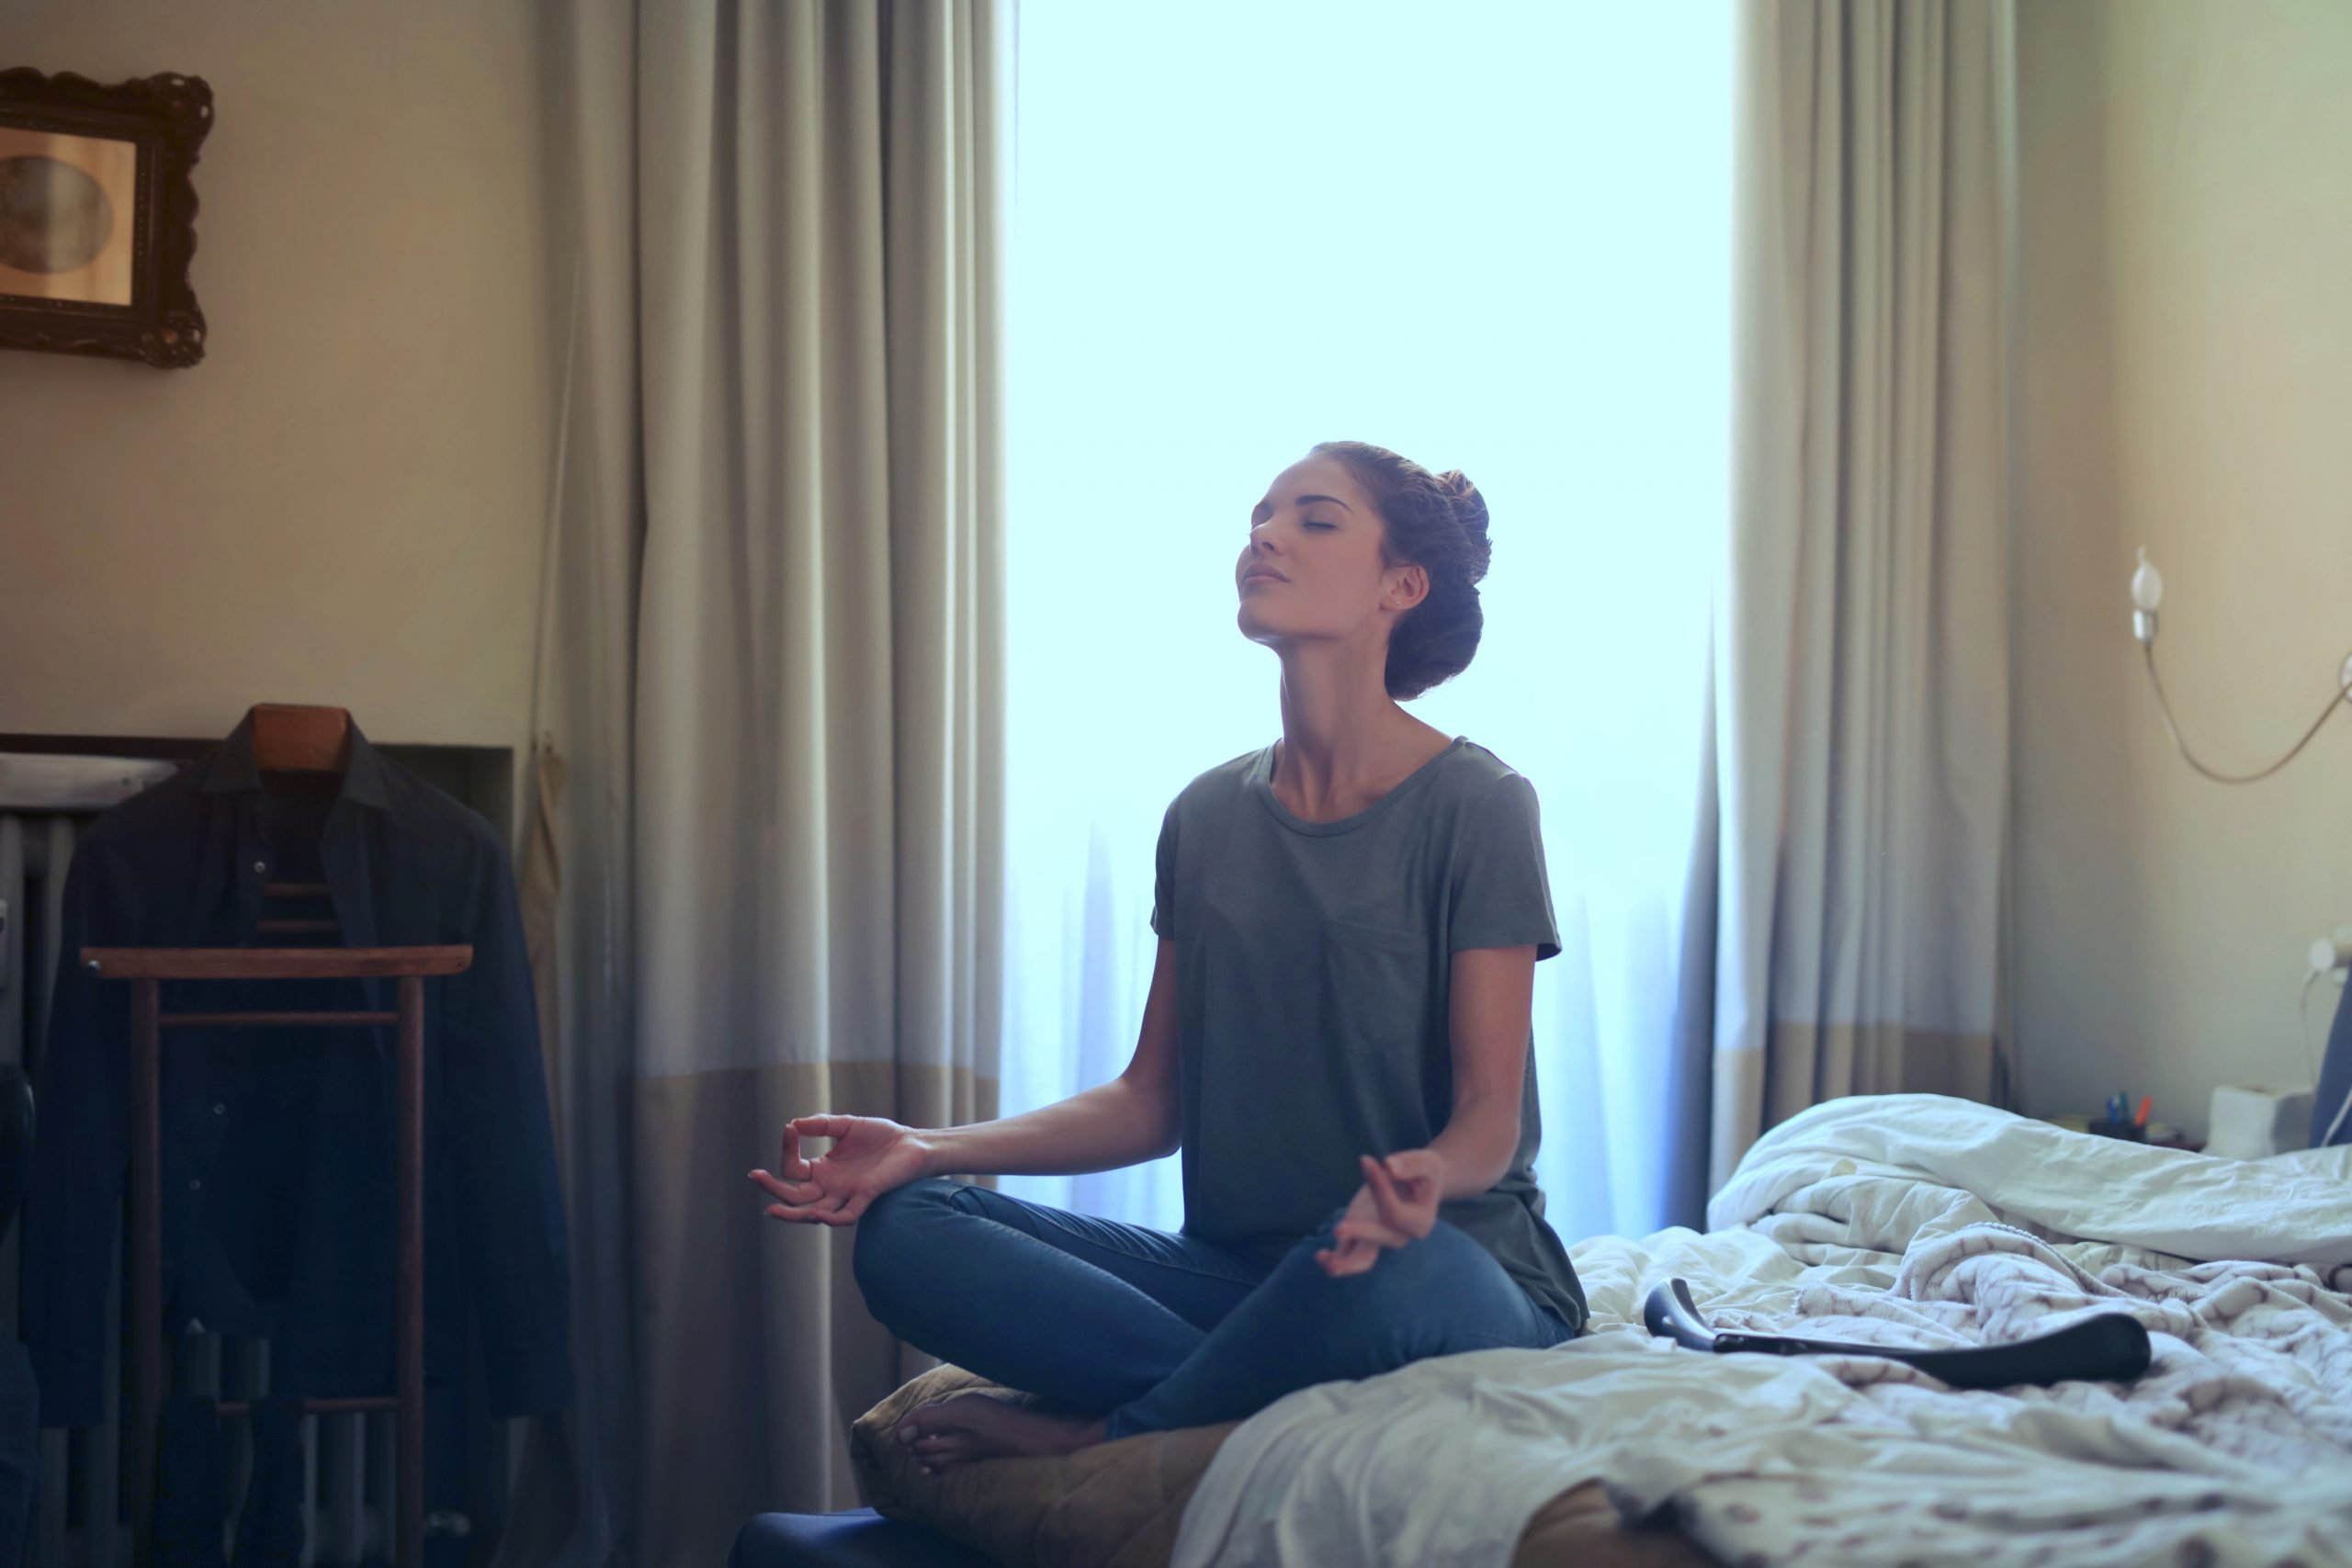 Tips for starting a mindfulness practice at home now